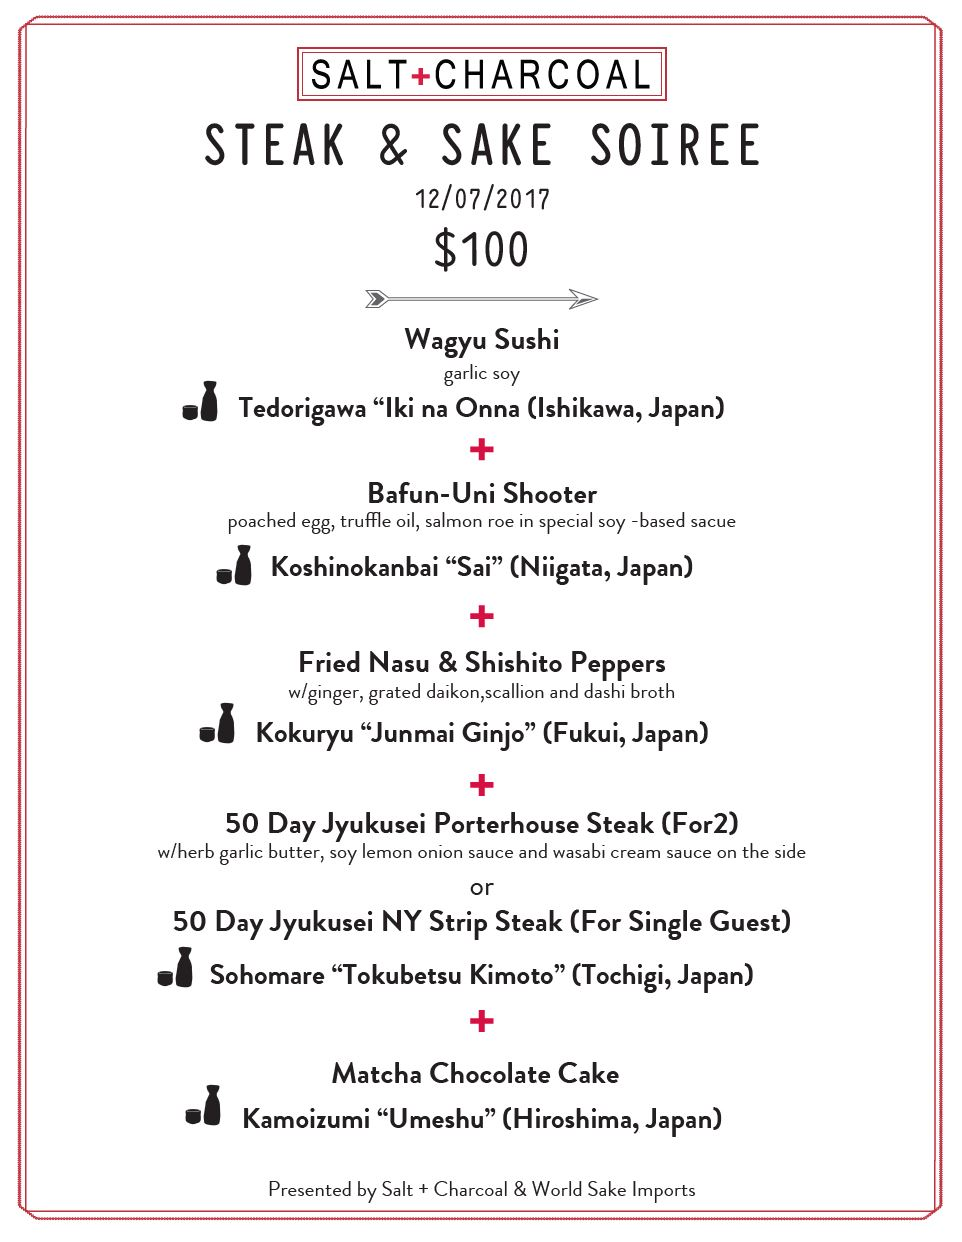 Sake_Soiree_Menu.JPG